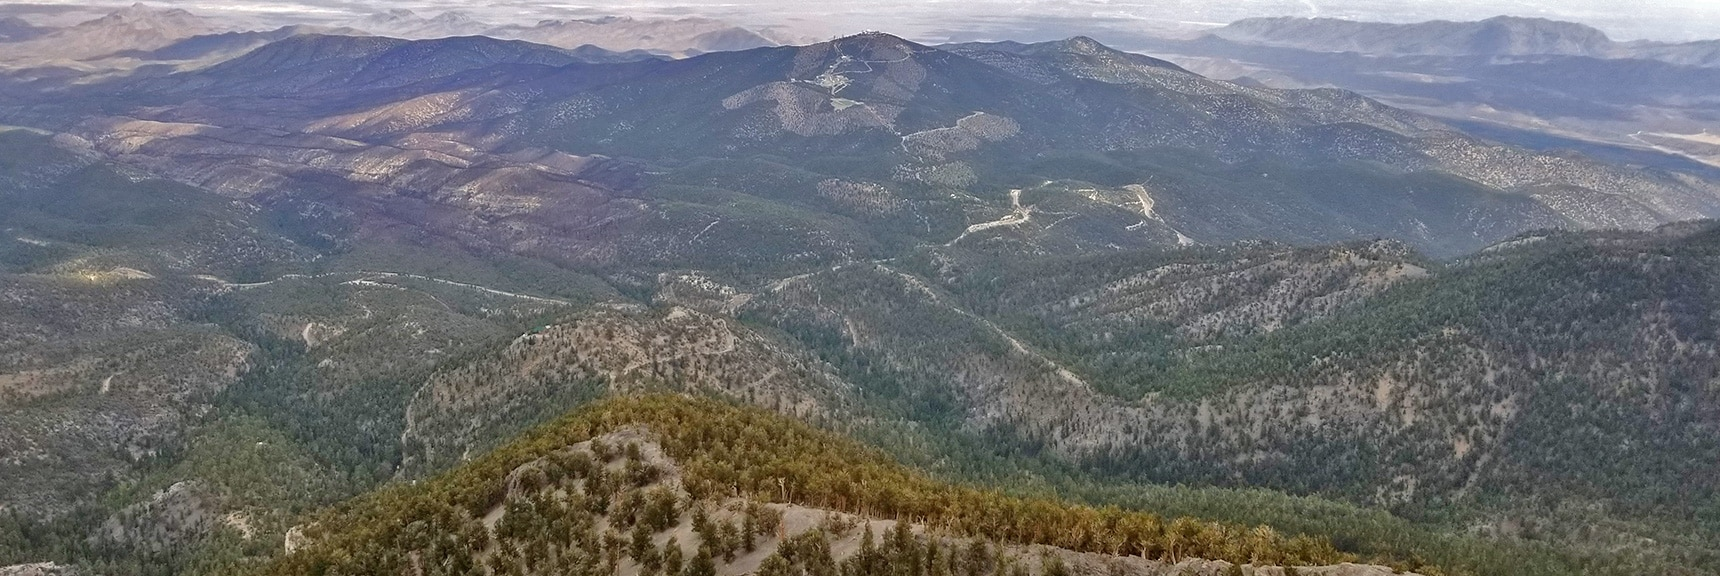 View Down to Charleston Observatory and North Loop Trailhead from Eastern Summit Cliffs   Mummy Mountain Northern Rim Overlook, Spring Mountain Wilderness, Nevada